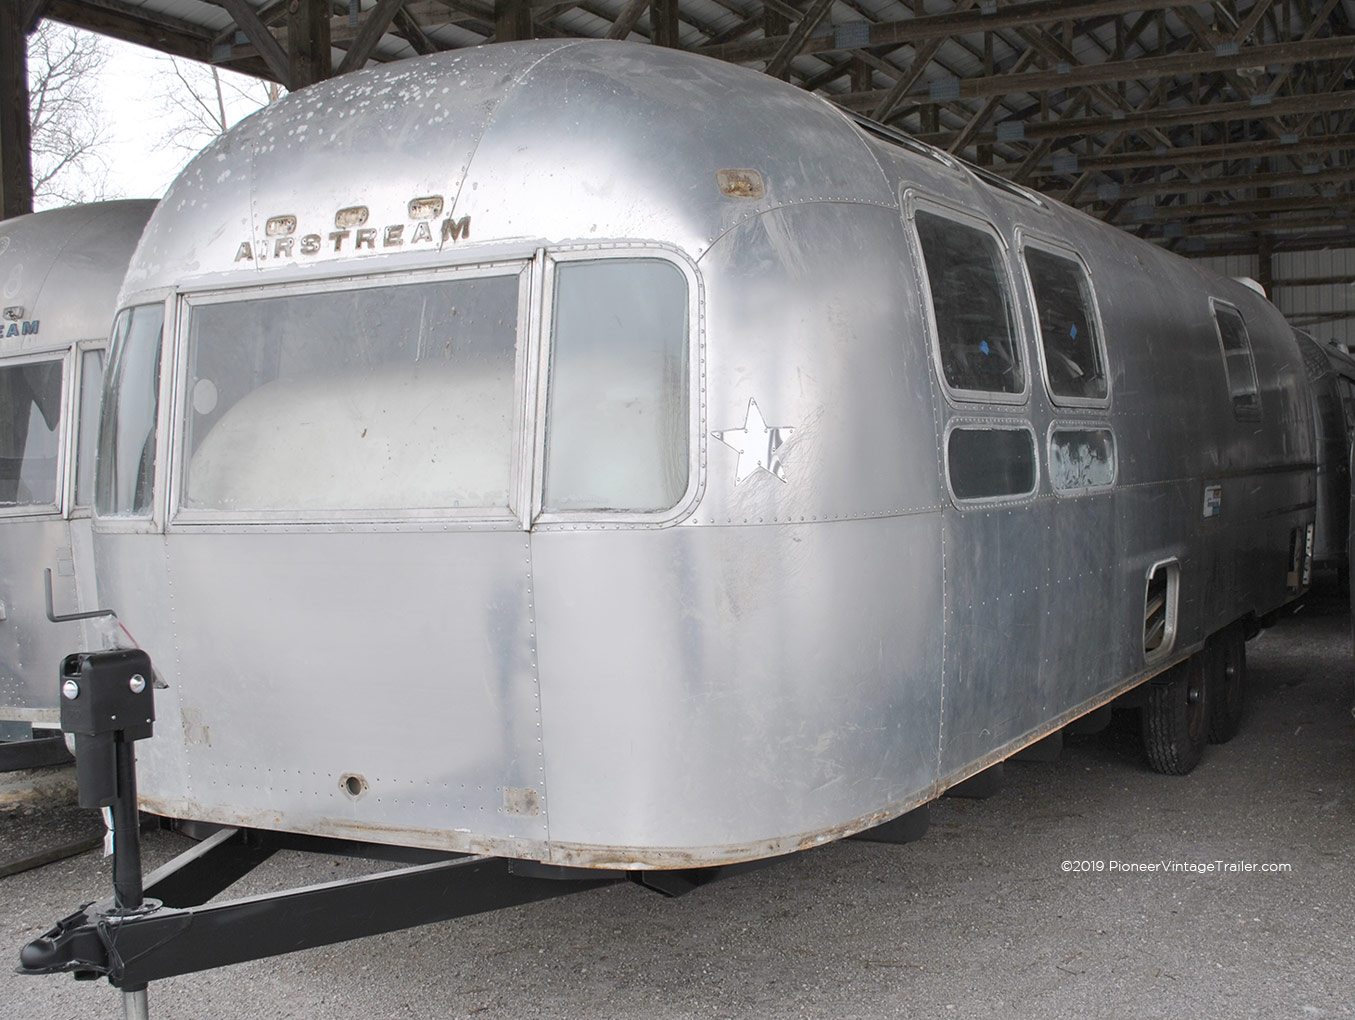 1972 Airstream Sovereign | Pioneer Vintage Trailer